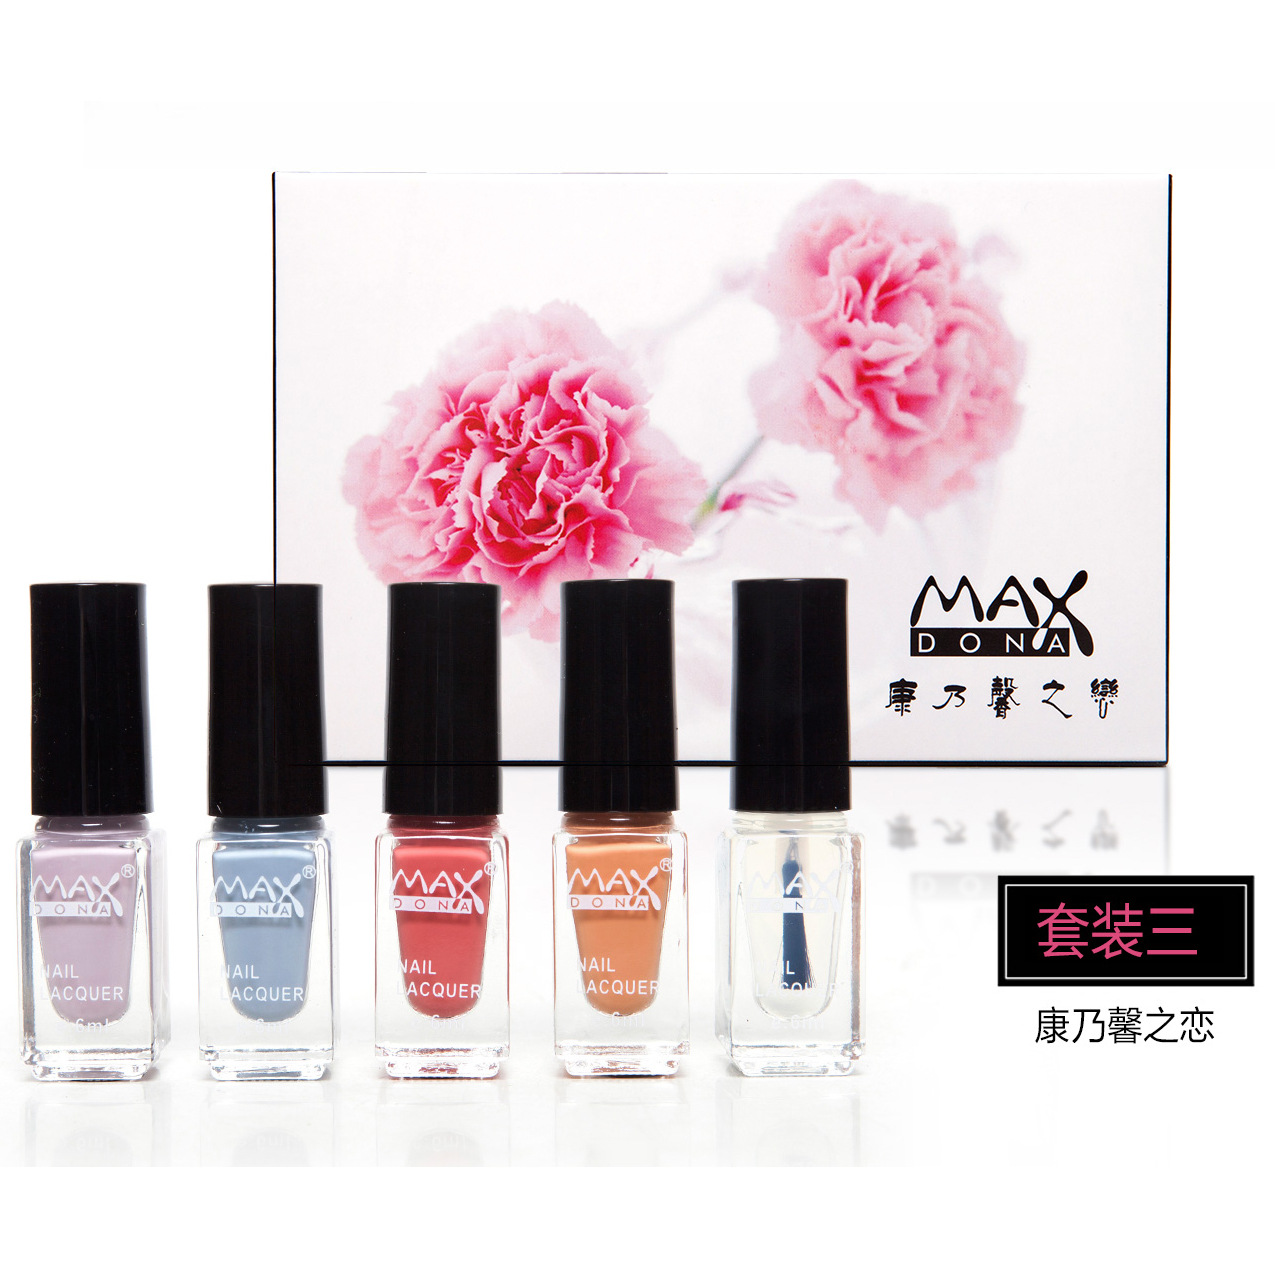 5 Pieces Nail Polish Could Use For Pregnant Woman Aqueous